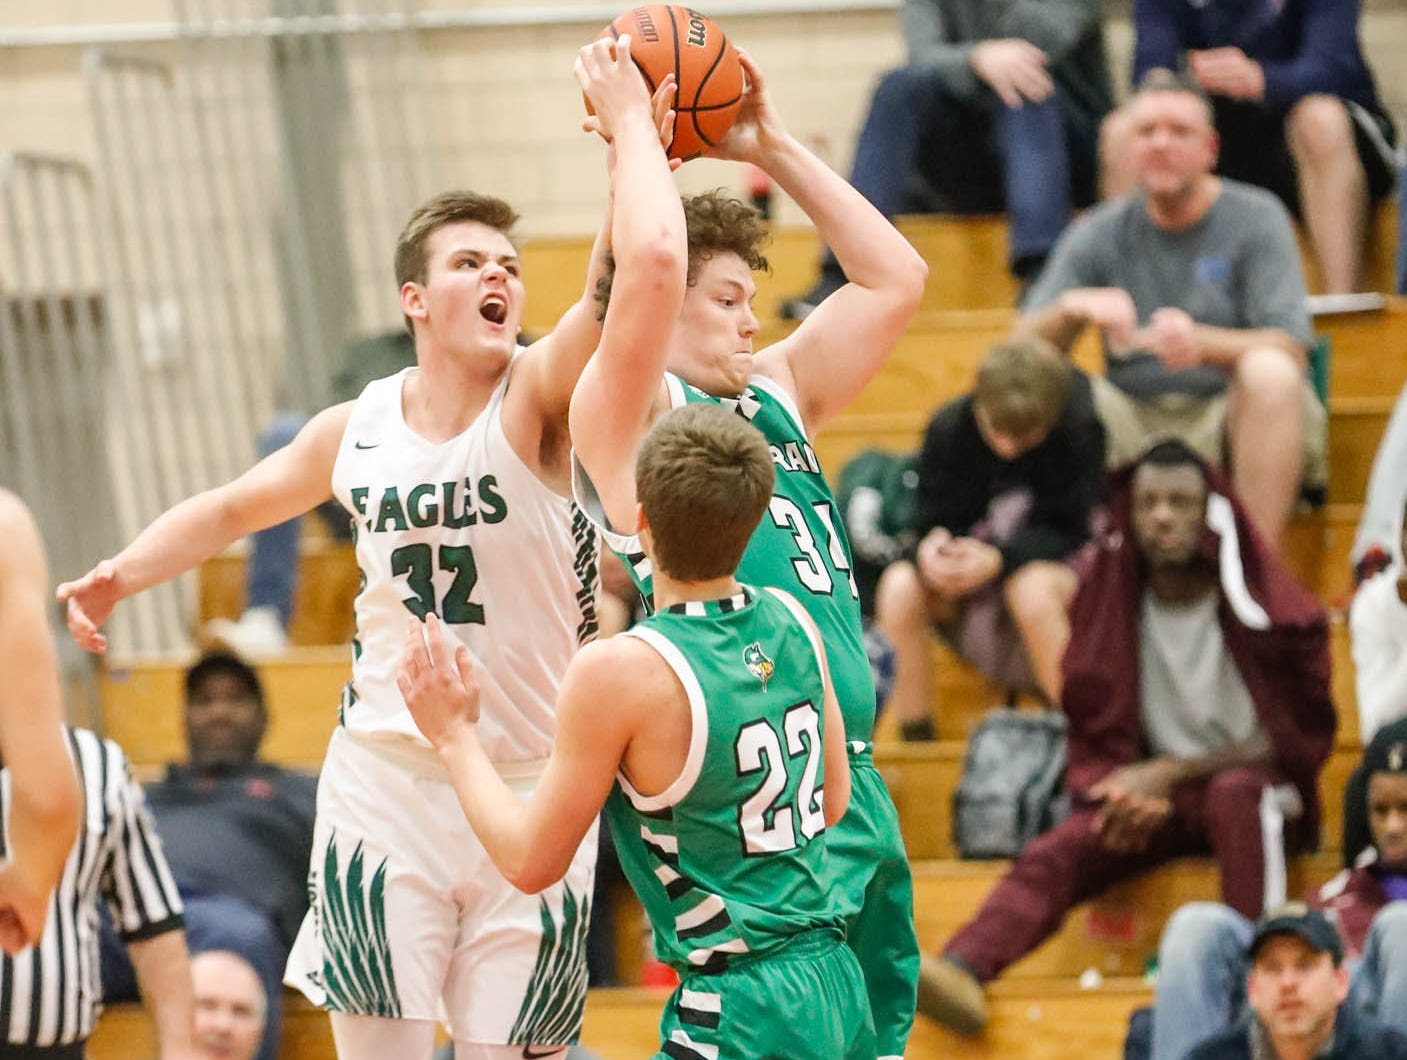 Zionsville Community High School's Hogan Orbaugh (32), Valparaiso High School's Brandon Mack (22), and Valparaiso's Jacob Evans (34), jump for a rebound during a game between Zionsville Community High School, and Valparaiso High School, in the 4th Annual Manuel Extravaganza Showcase held at Emmerich Manuel High School in Indianapolis on Saturday, Dec. 22, 2018.